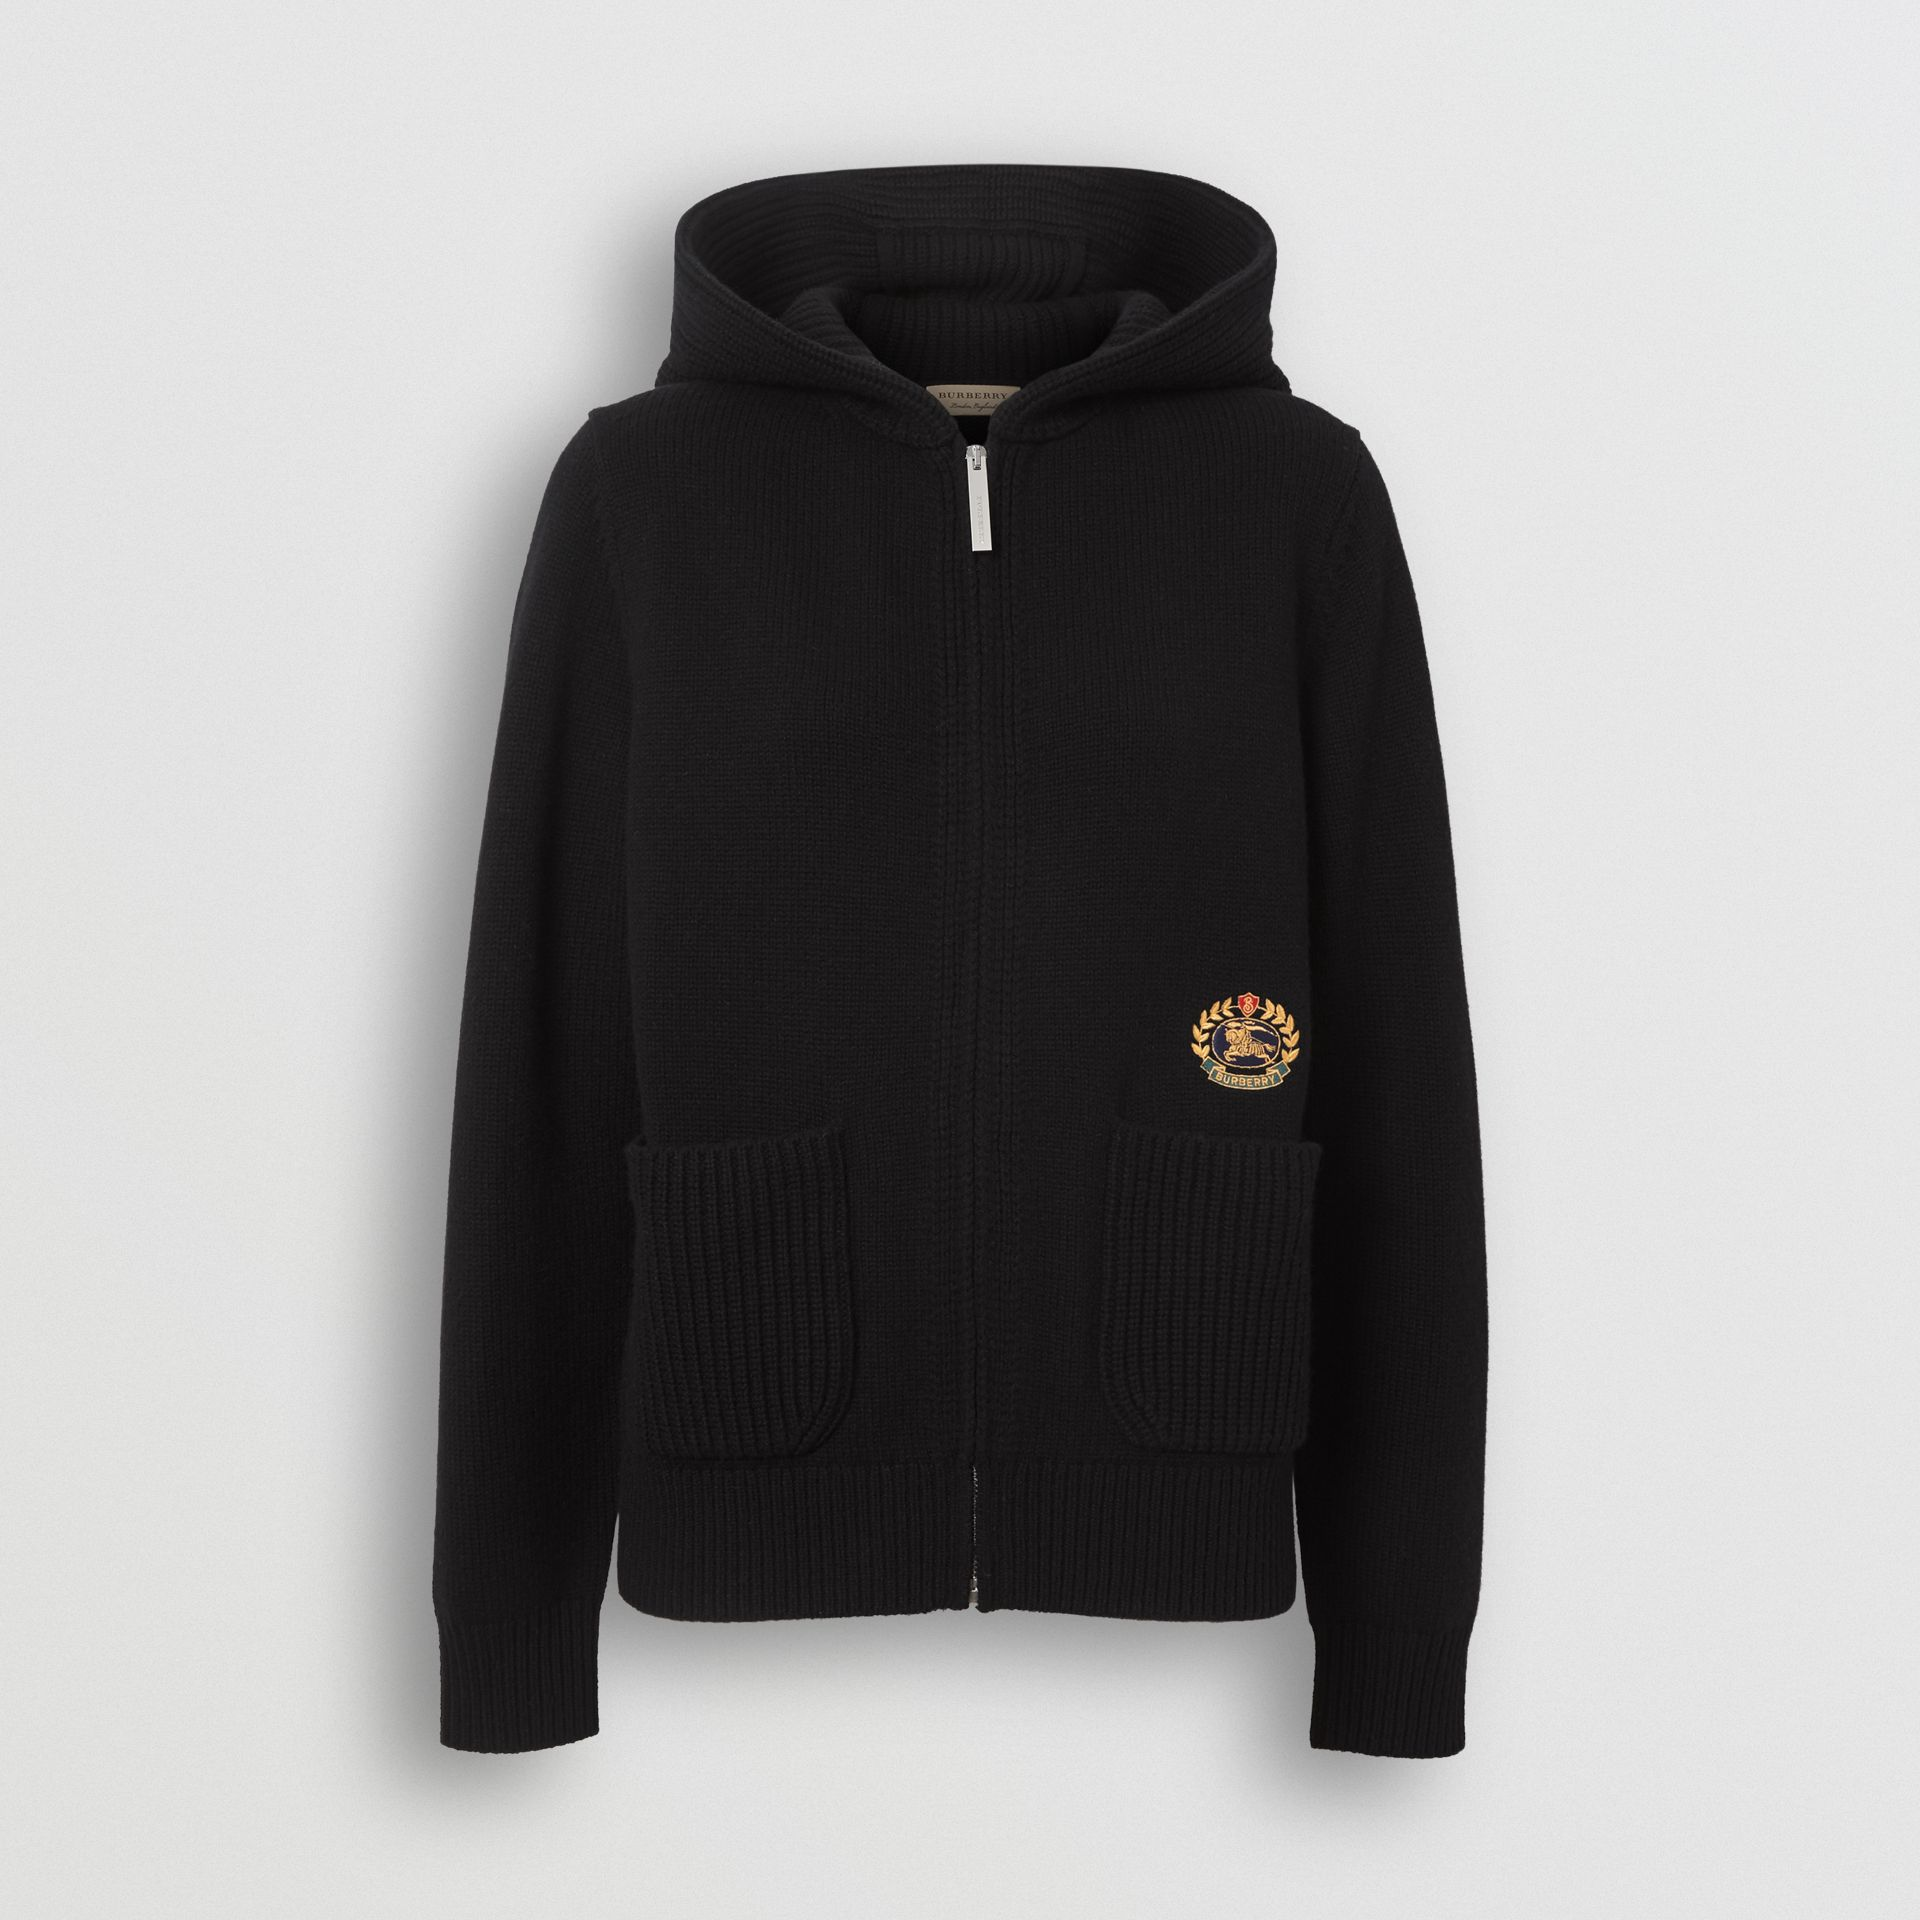 Embroidered Crest Cashmere Hooded Top in Black - Women | Burberry Australia - gallery image 3